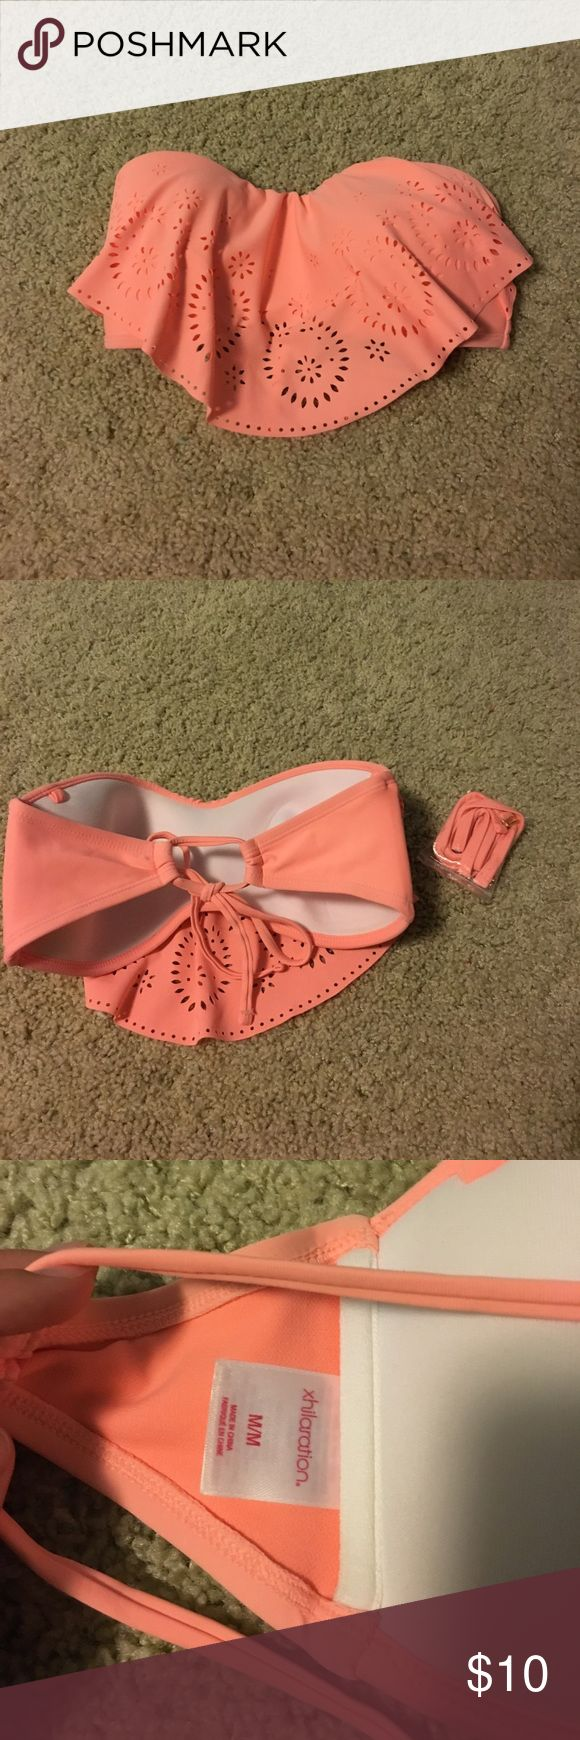 Strapless Target Bikini Top Excellent condition, comes with straps. Open to offers. Xhilaration Swim Bikinis